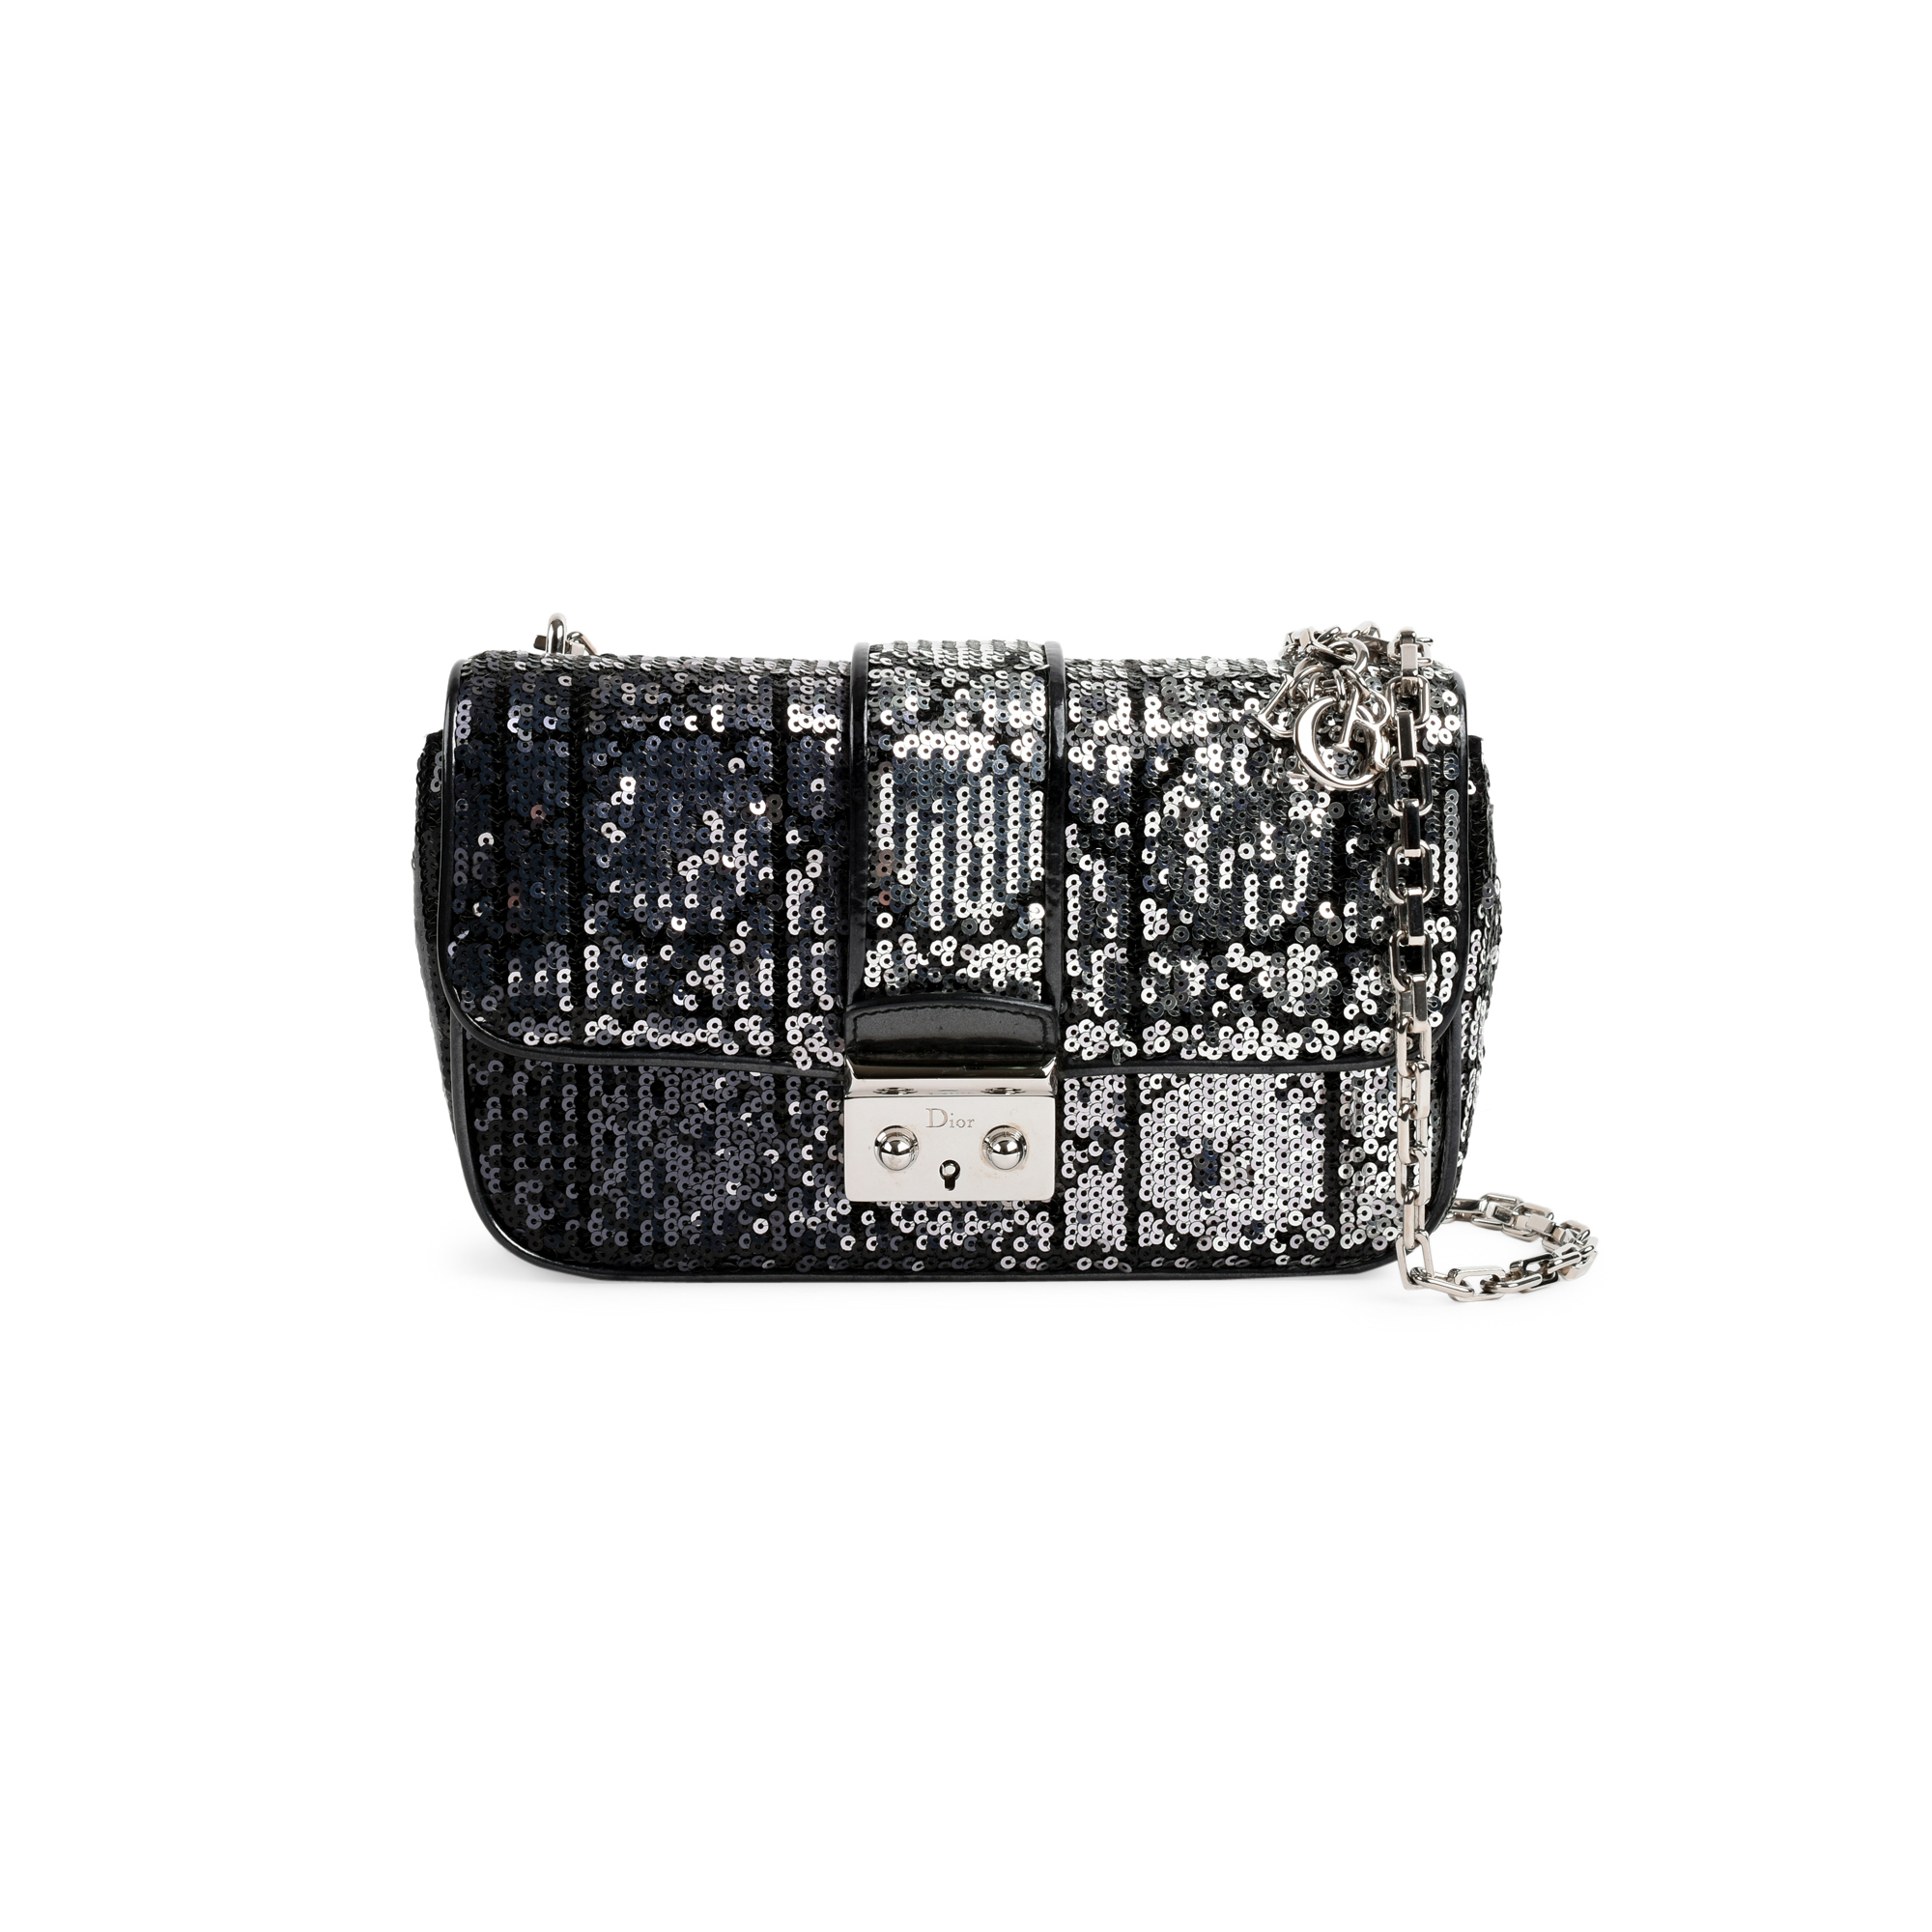 ecd62a6f6db Authentic Second Hand Christian Dior Sequin Cannage Miss Dior Bag  (PSS-491-00006) - THE FIFTH COLLECTION